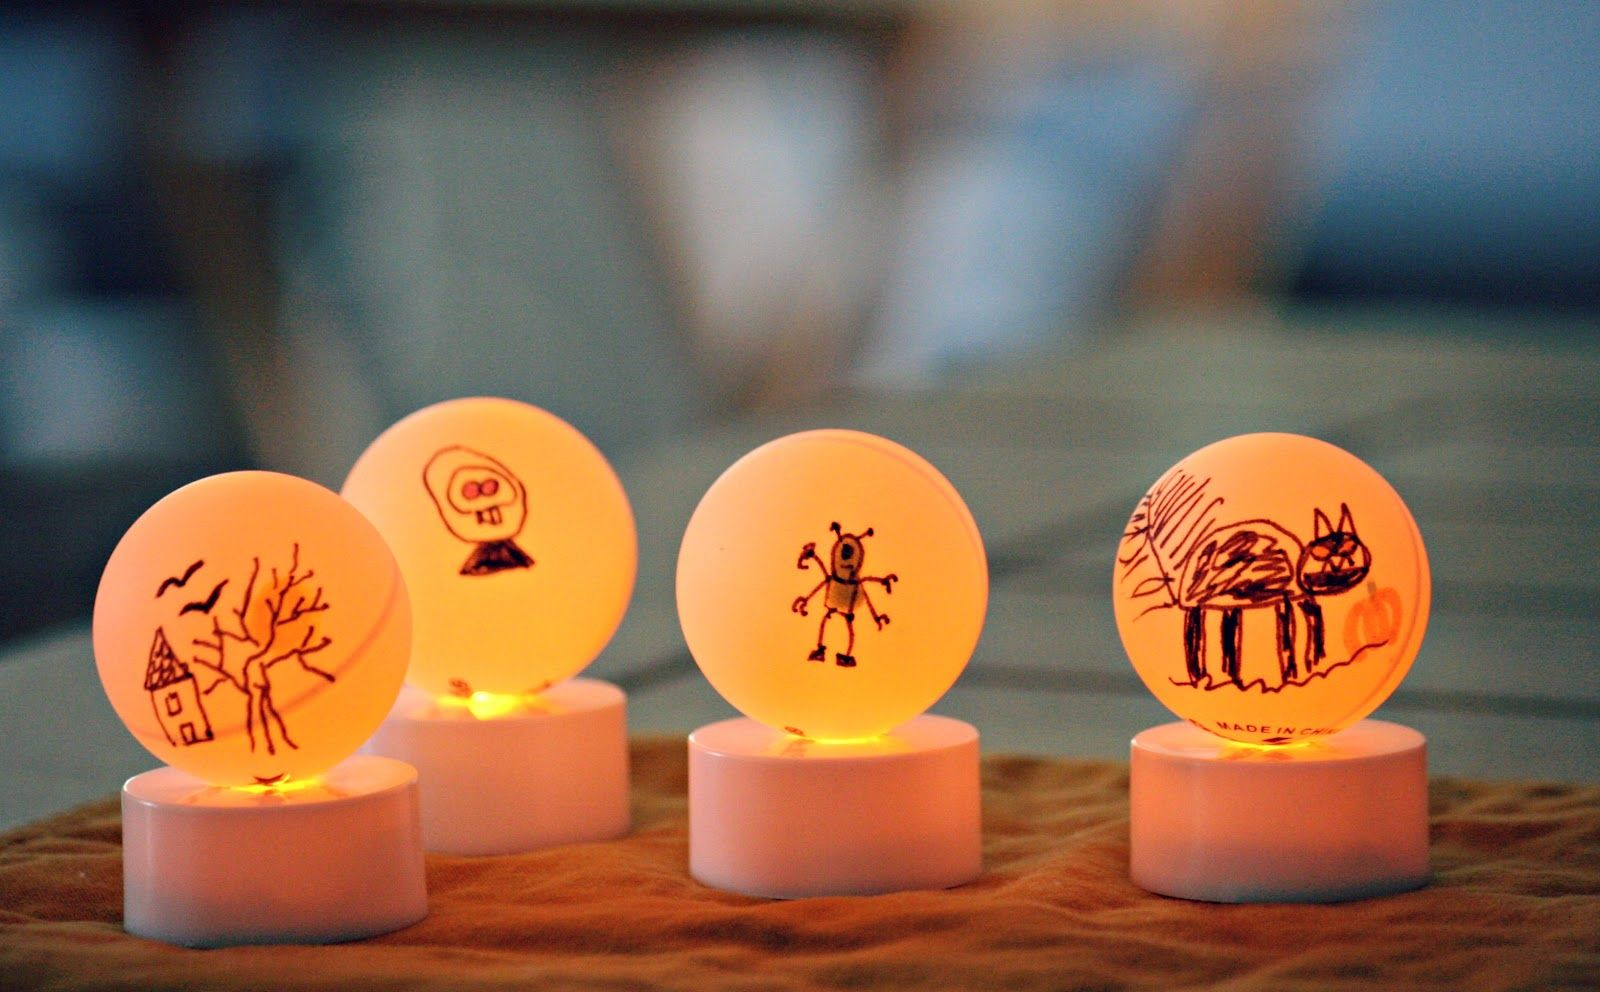 ping pong ball tea lights Google Search Crafty, Ping